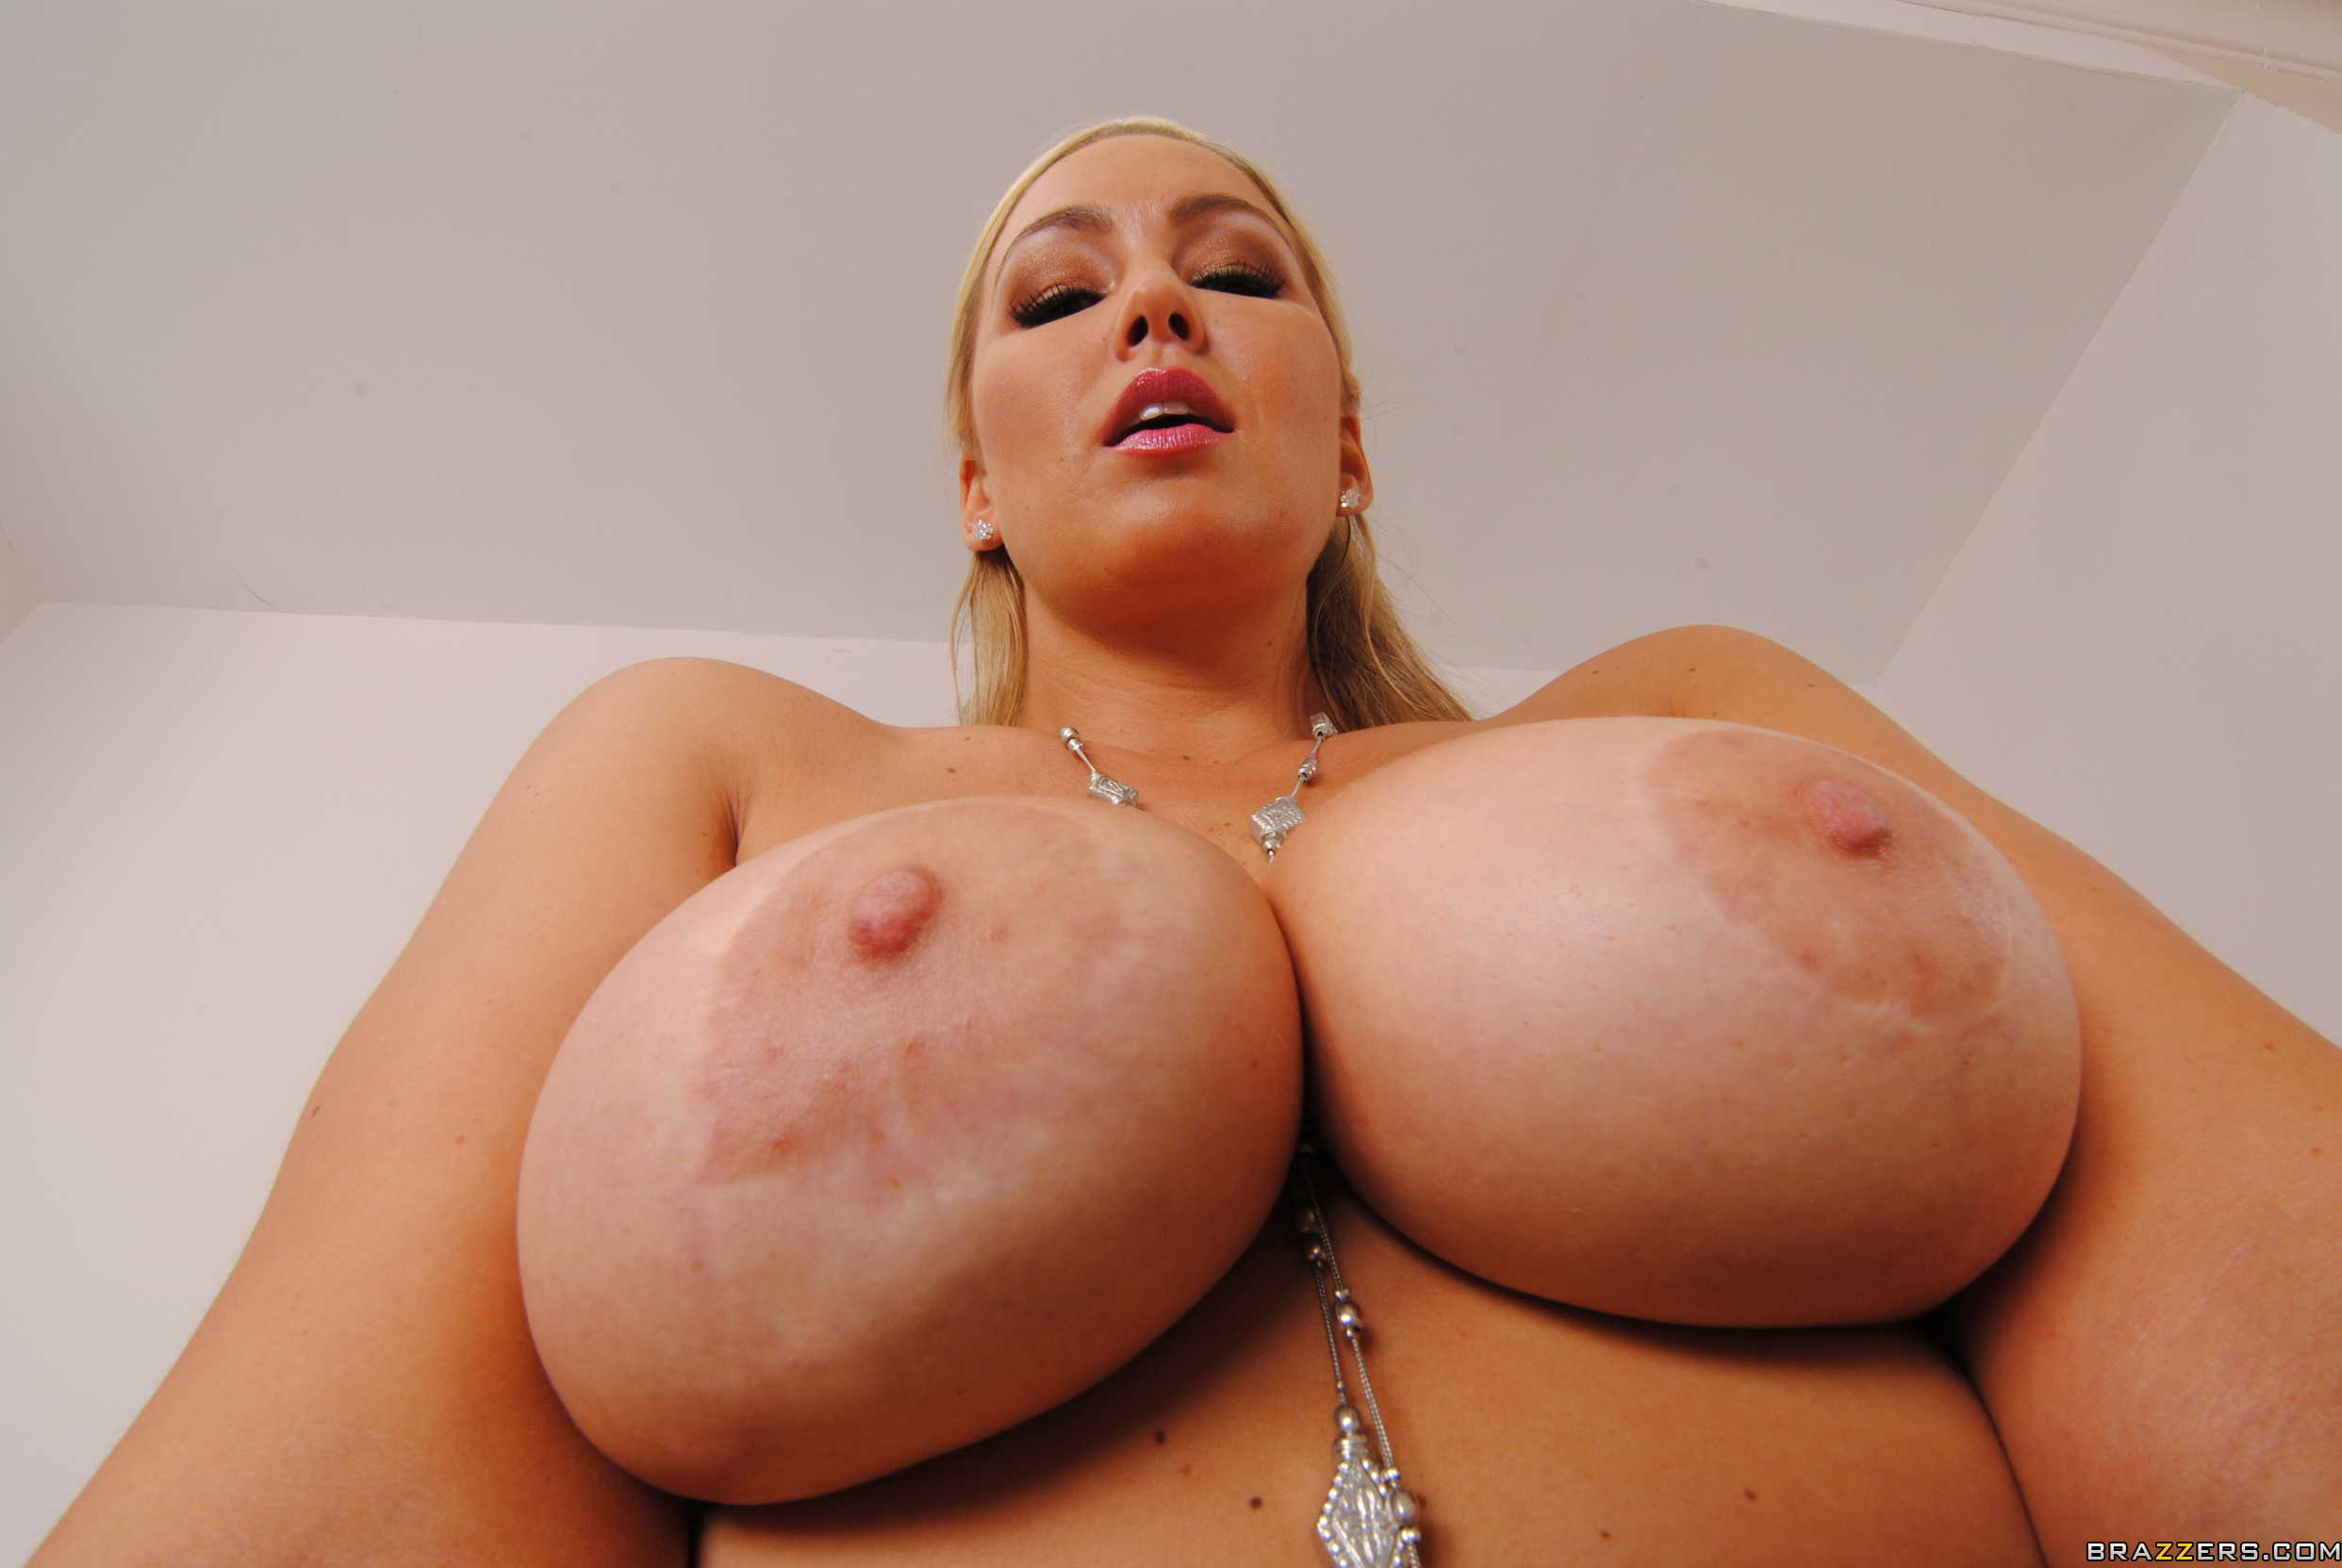 Abbey brooks plays with toys tits amp ass 2